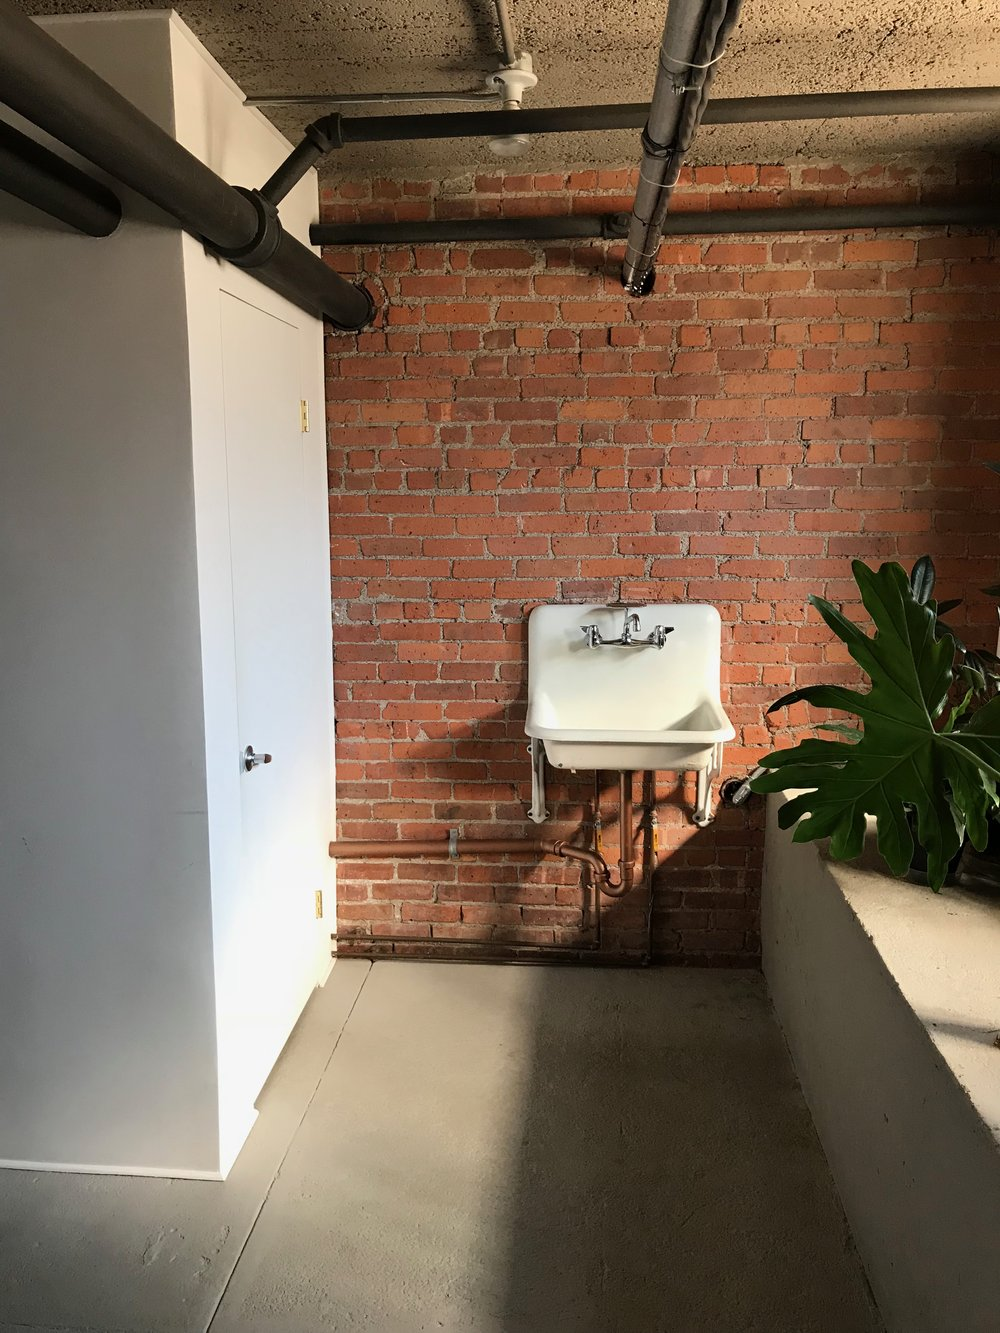 telelphone  building sink.jpg